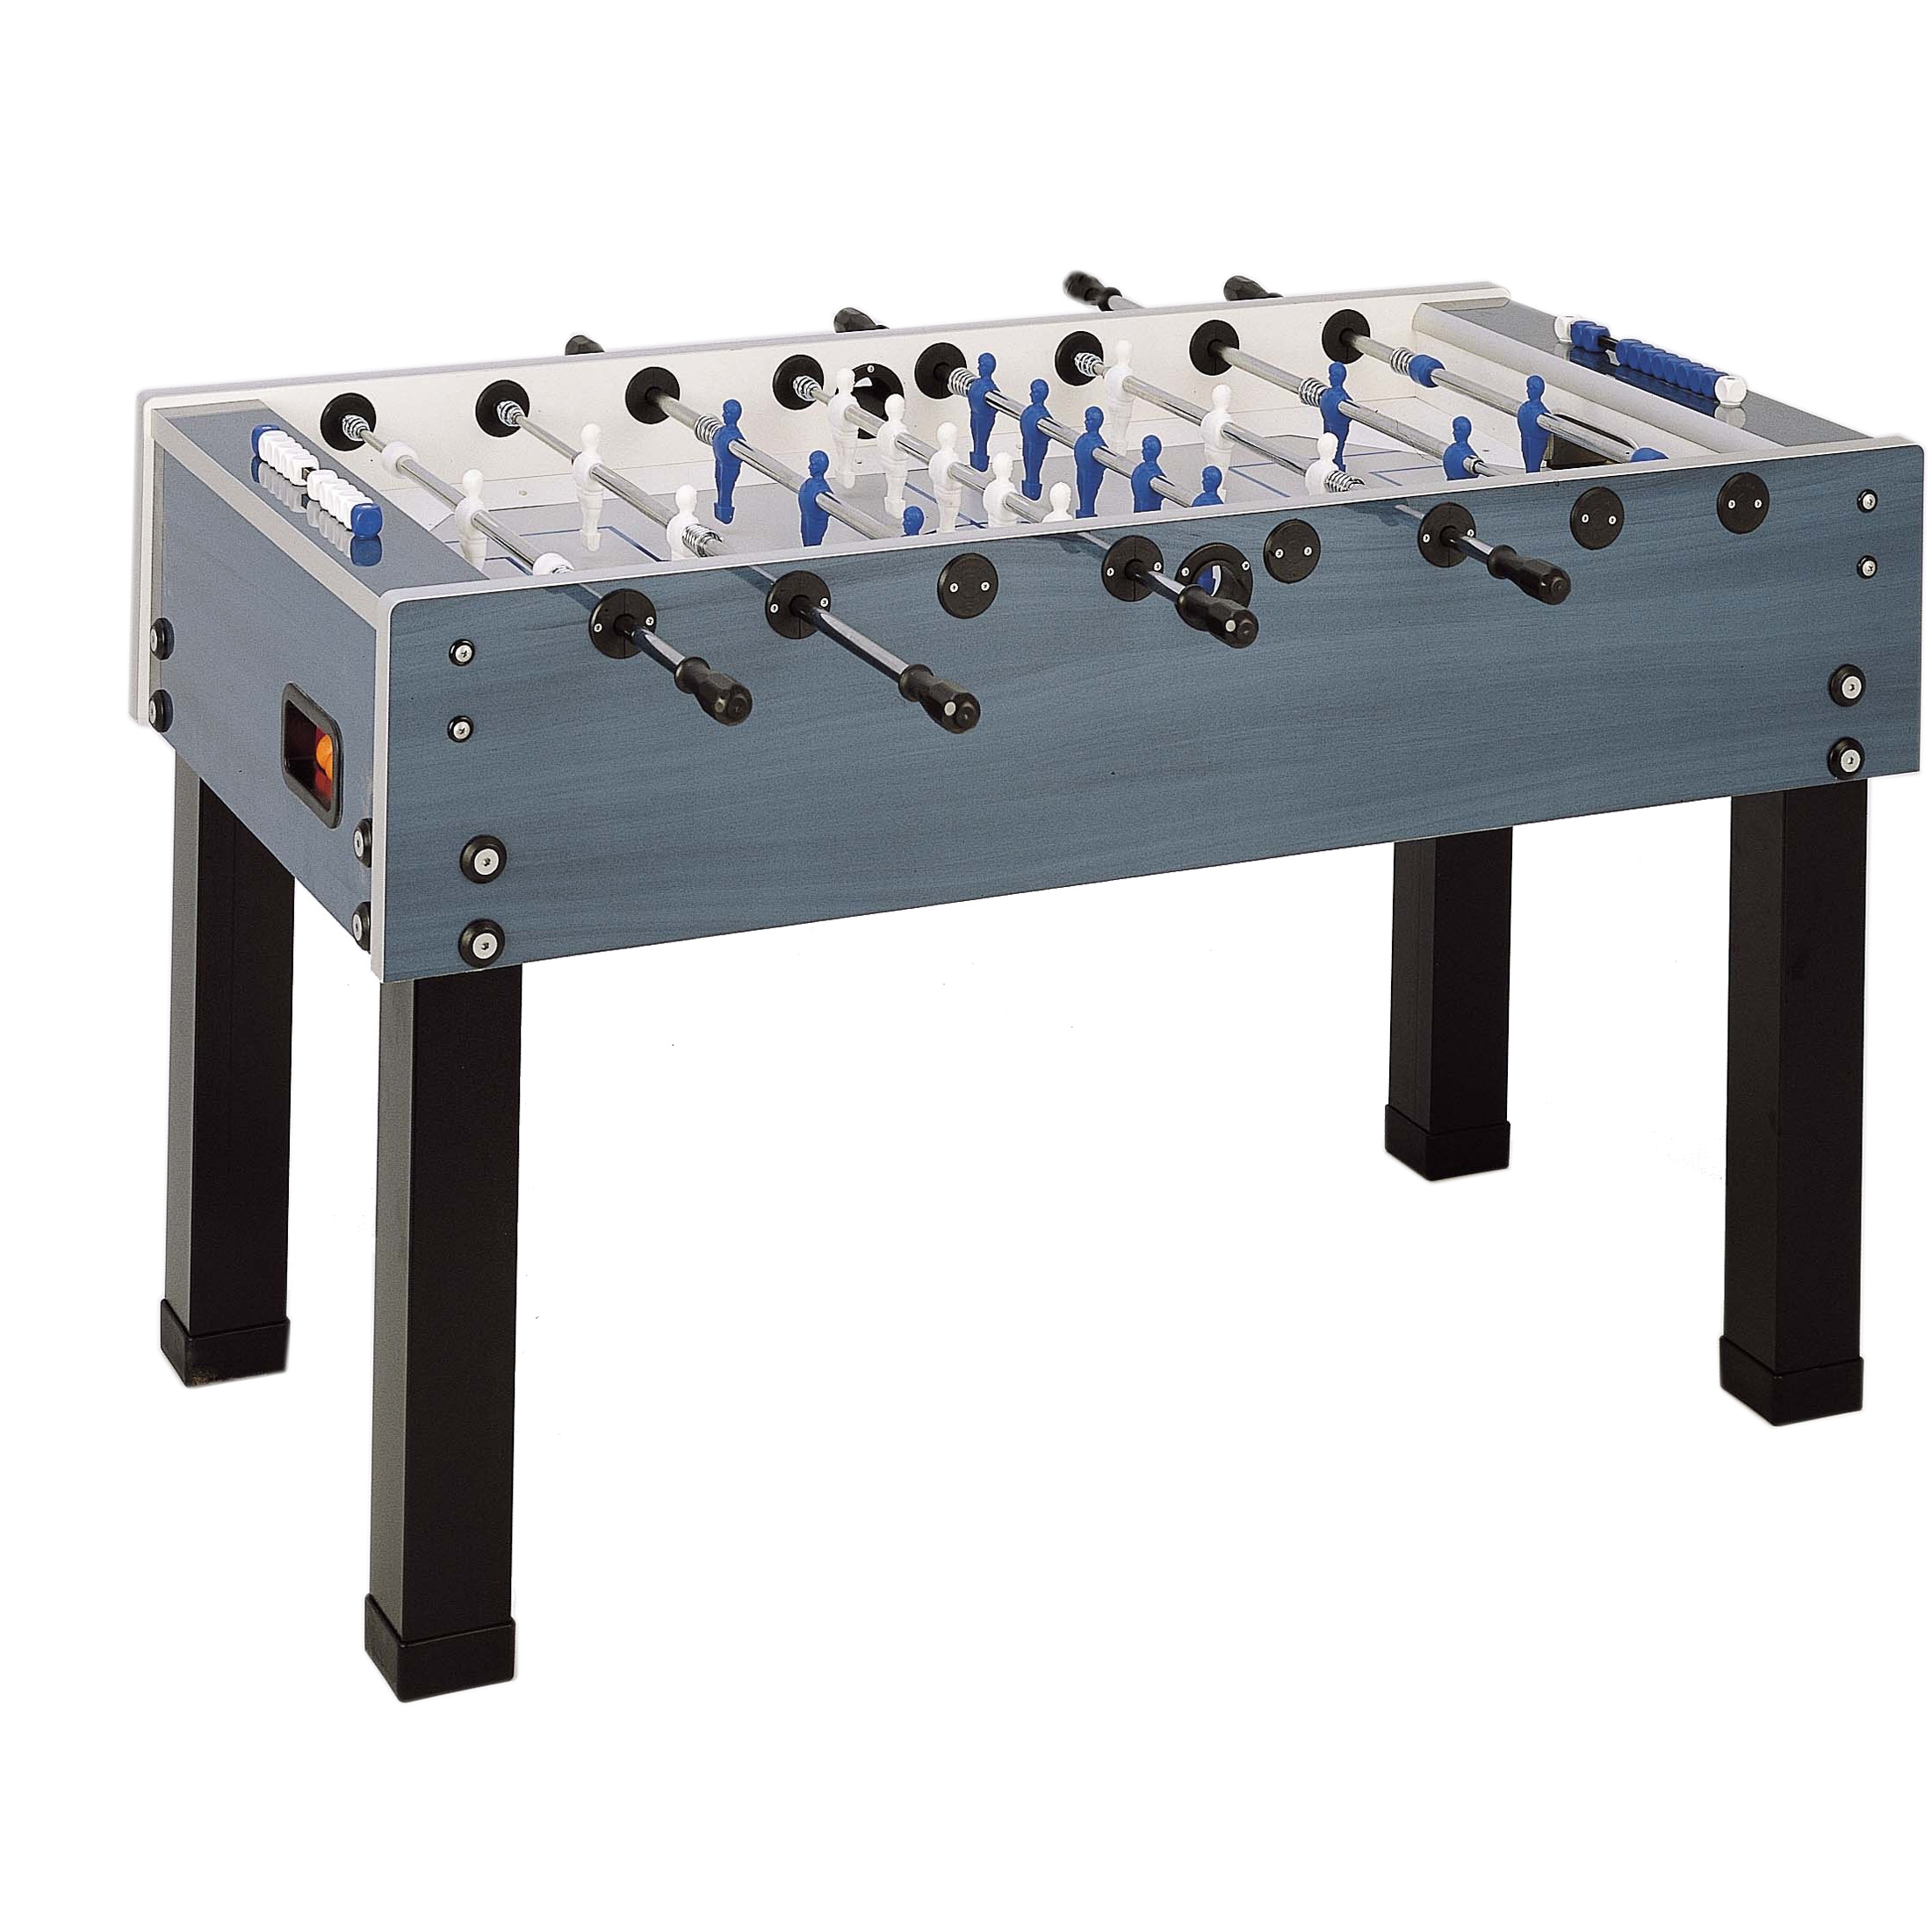 Garlando G500 Weatherproof Table Football Table  Blue